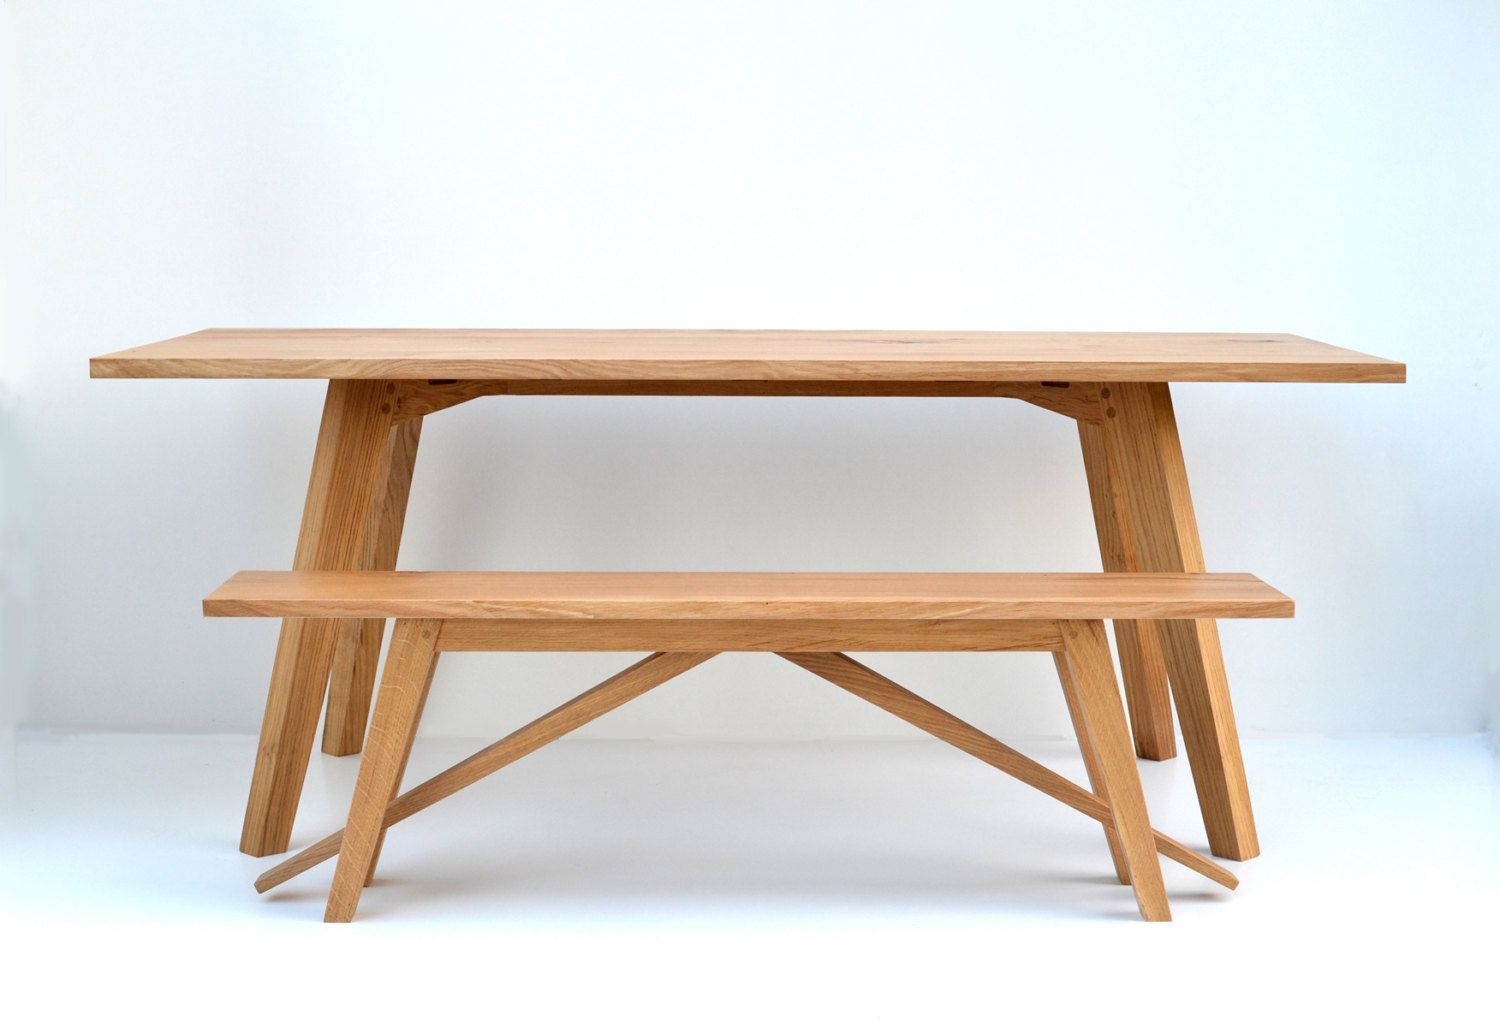 Kitchen table benches  Chiswick Oak Dining Table by MakersFurniture on Etsy  Kitchen